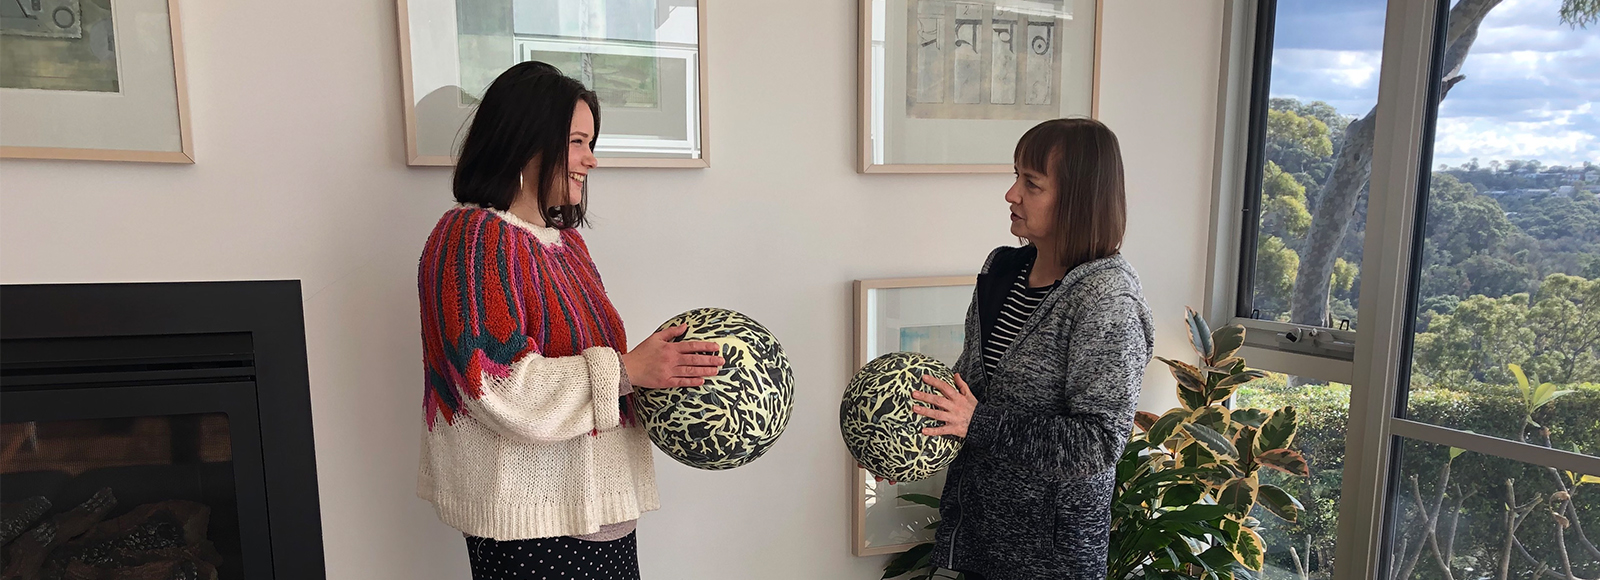 Sivaan Walker (left) will be mentored by UNSW Art & Design educator and artist Associate Professor Emma Robertson (right) for 12 months. Image supplied.